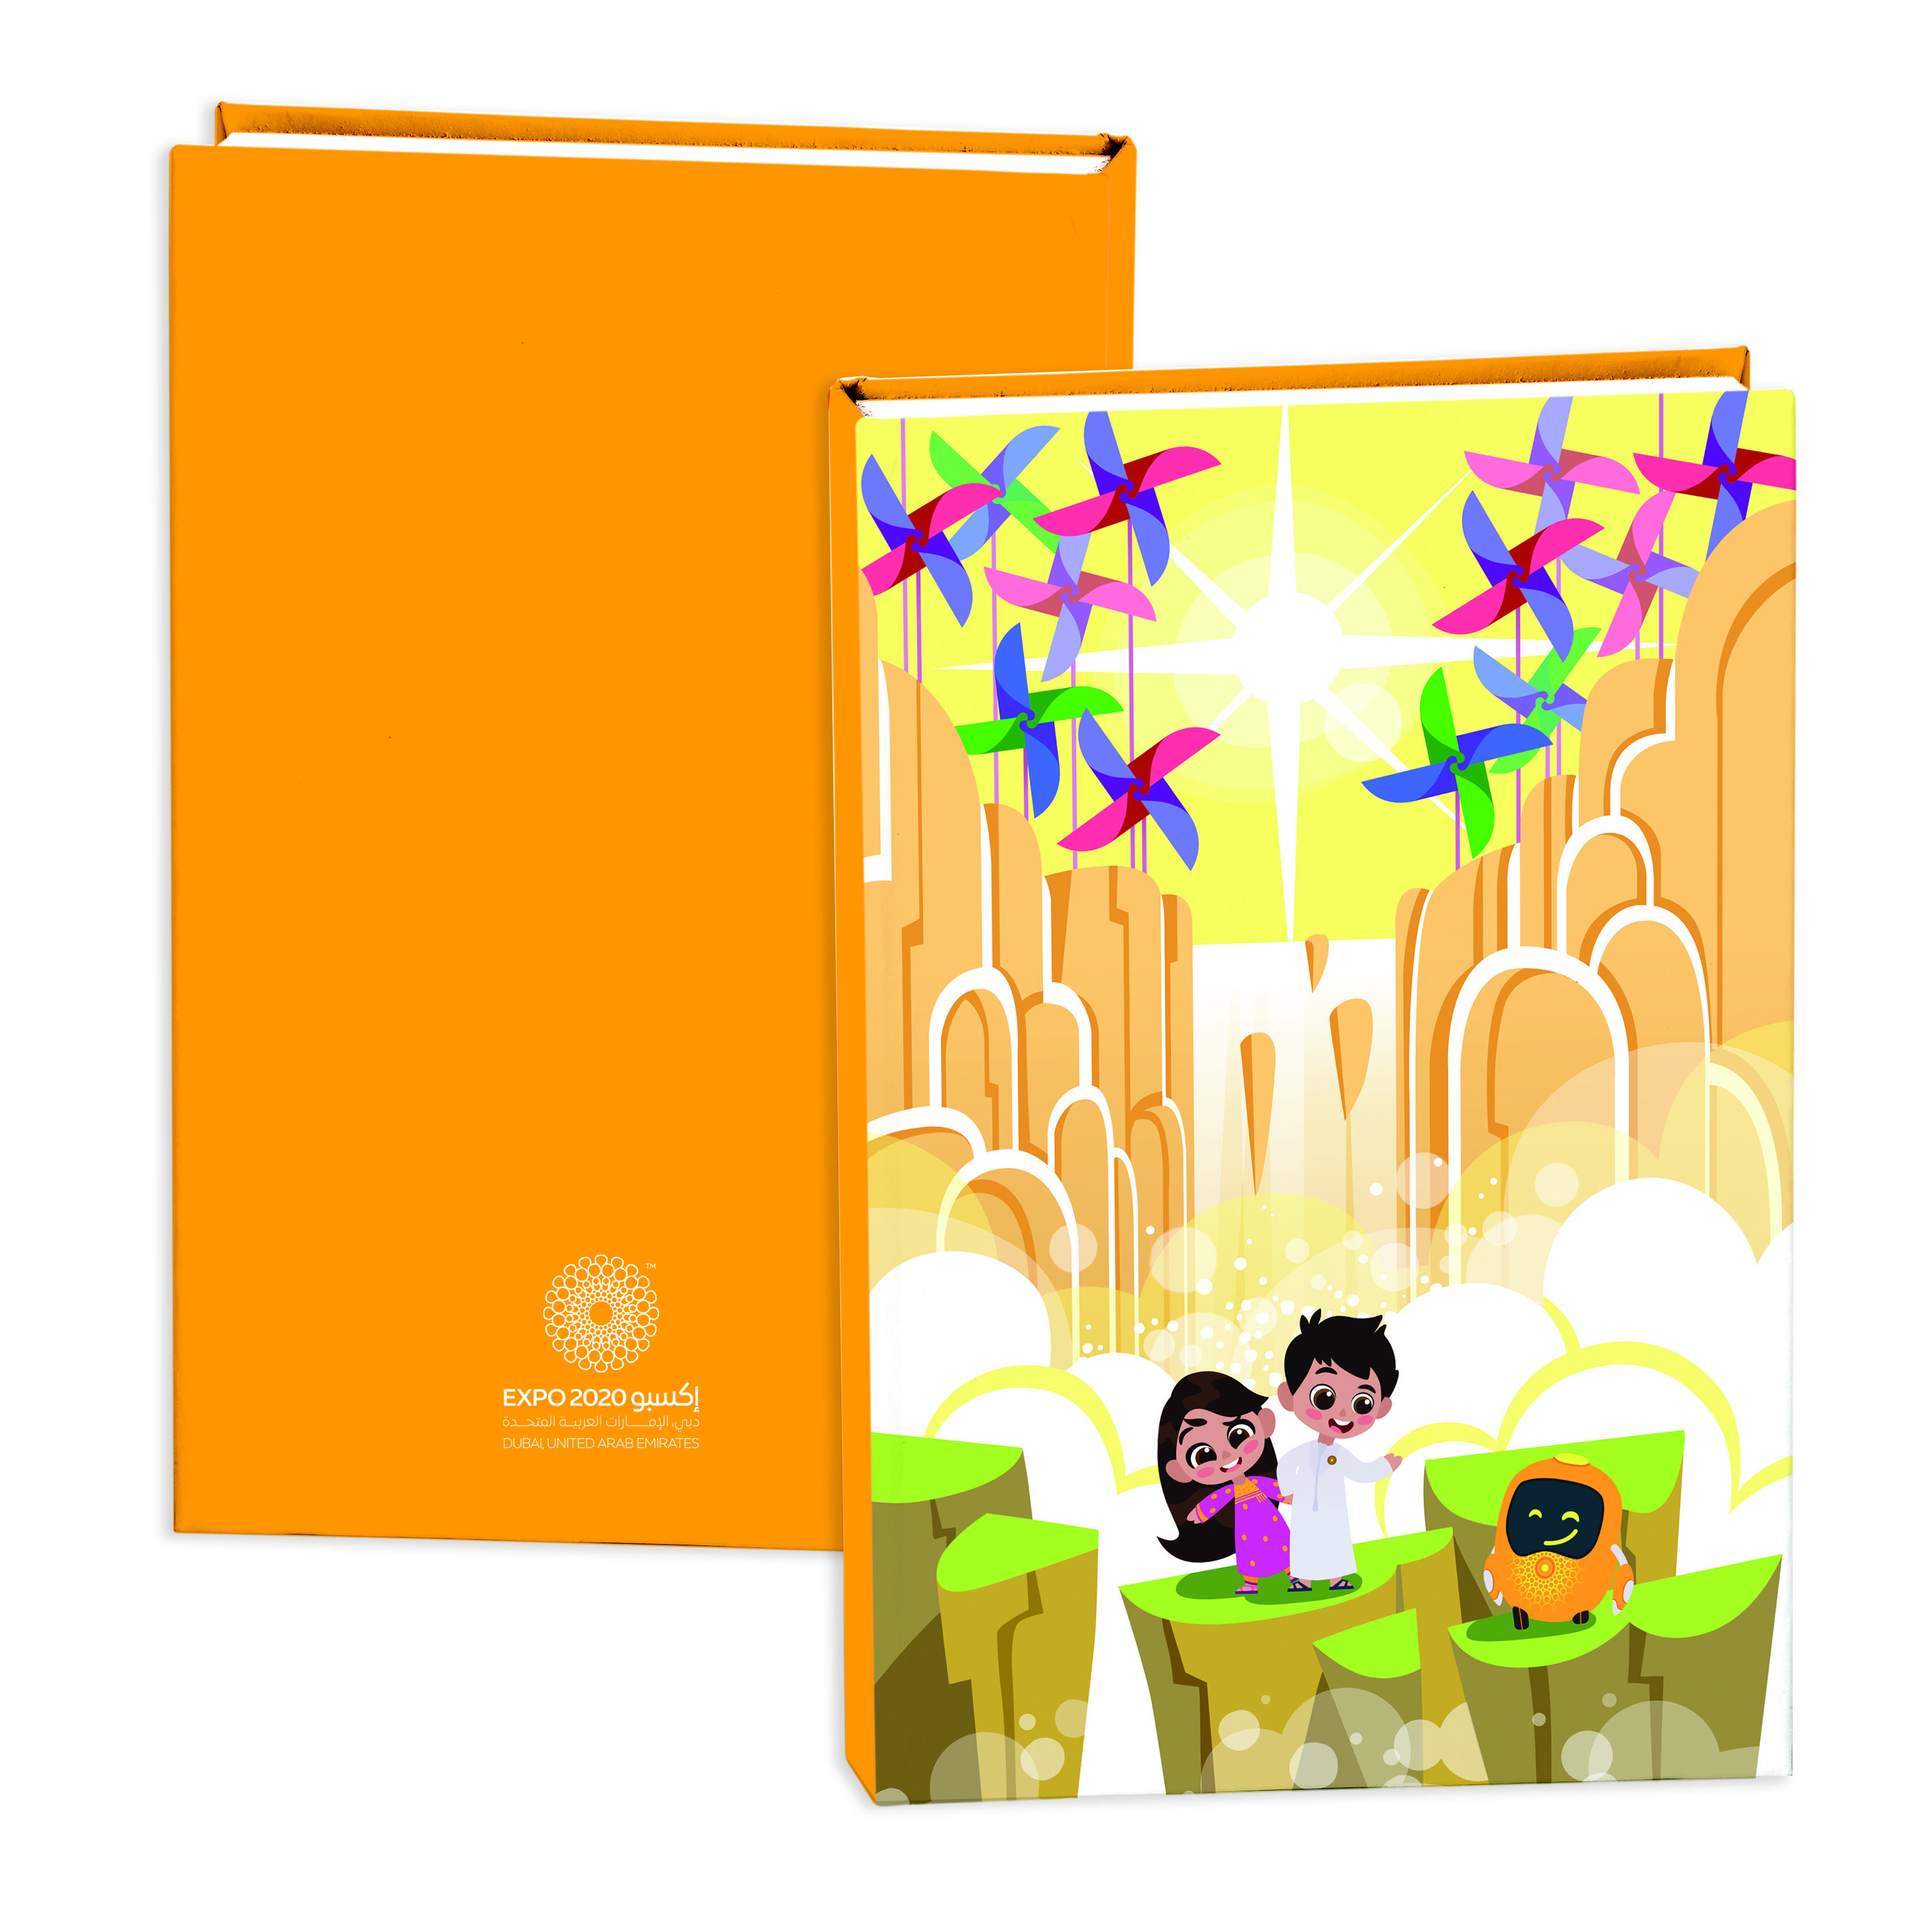 Expo 2020 Dubai Mascots B5 Hardcase Exercise Books Pack of 2 - 192 Pages